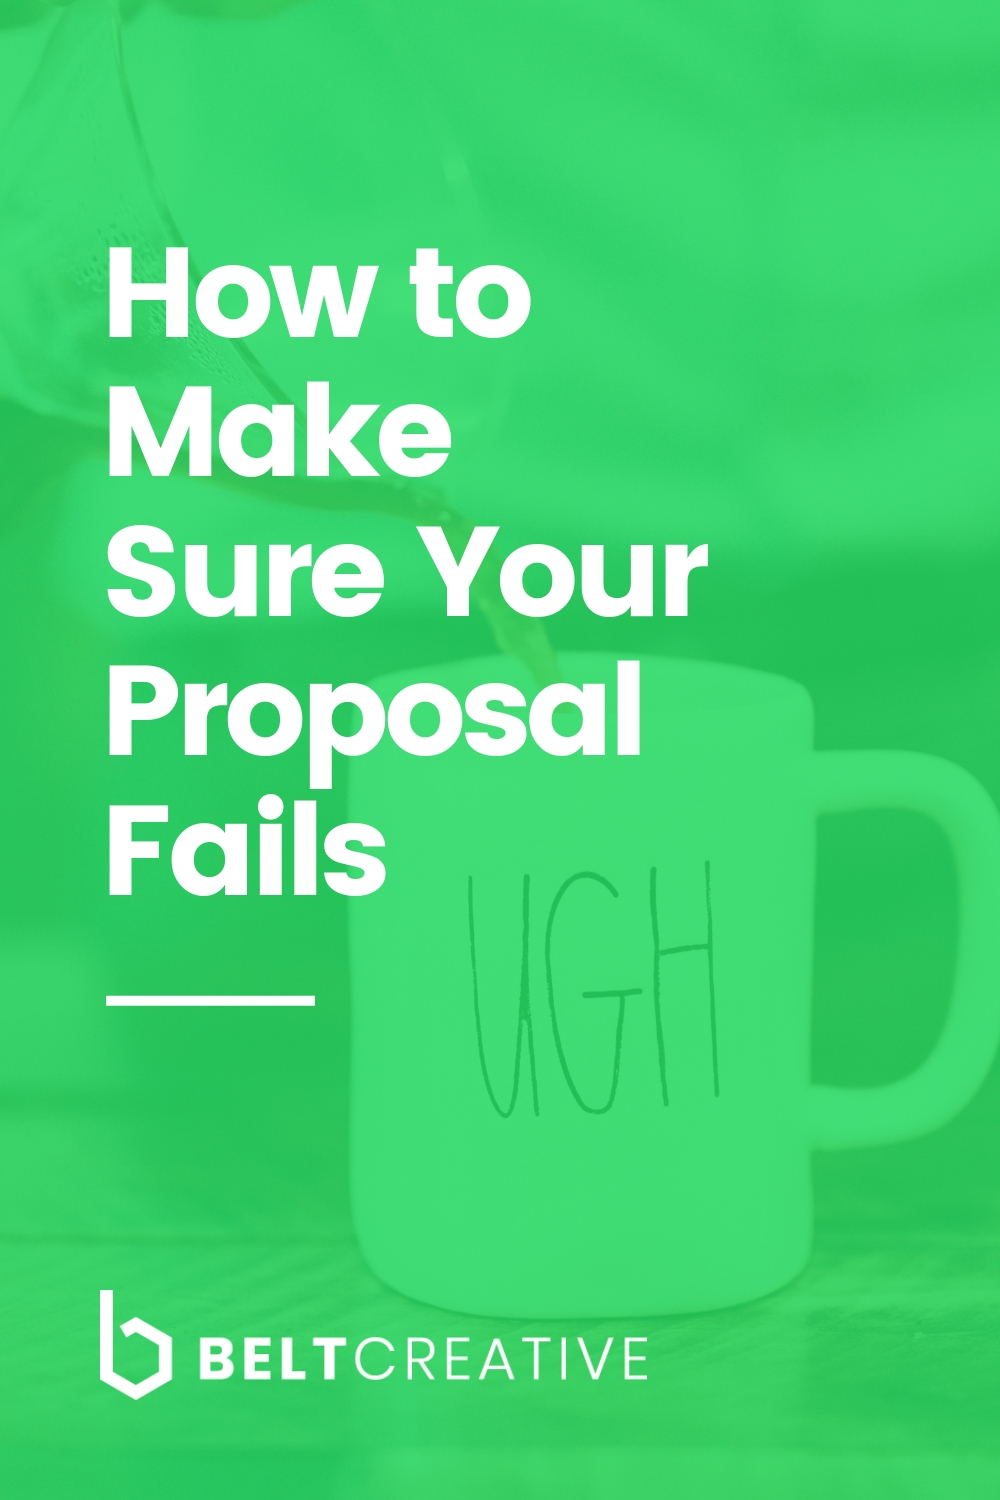 How to Make Sure Your Proposal Fails.jpg